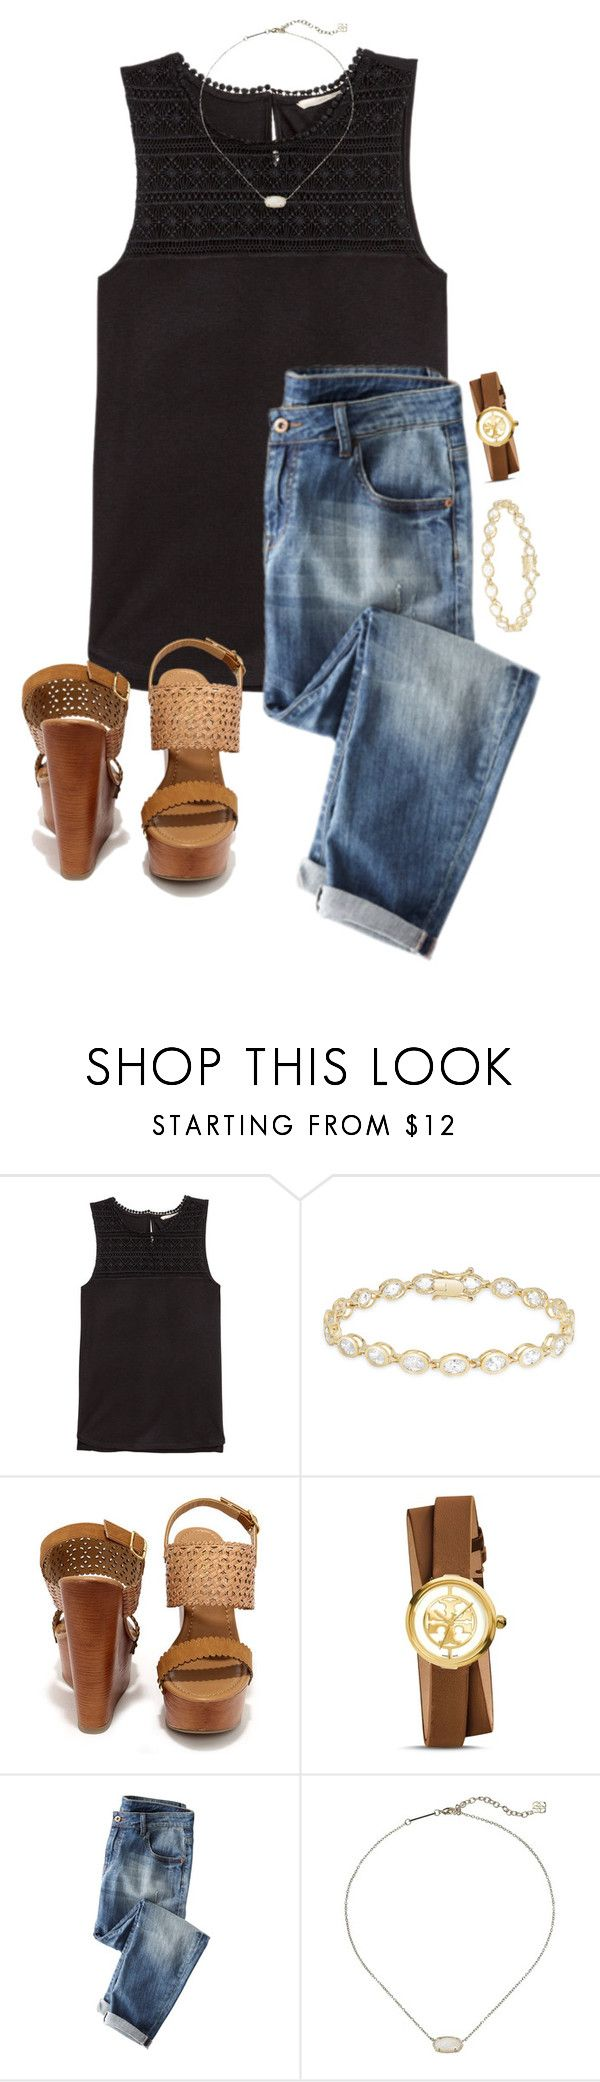 """""""Untitled #484"""" by lydia-hh ❤ liked on Polyvore featuring H&M, Dolce Giavonna, Soda, Tory Burch and Kendra Scott"""